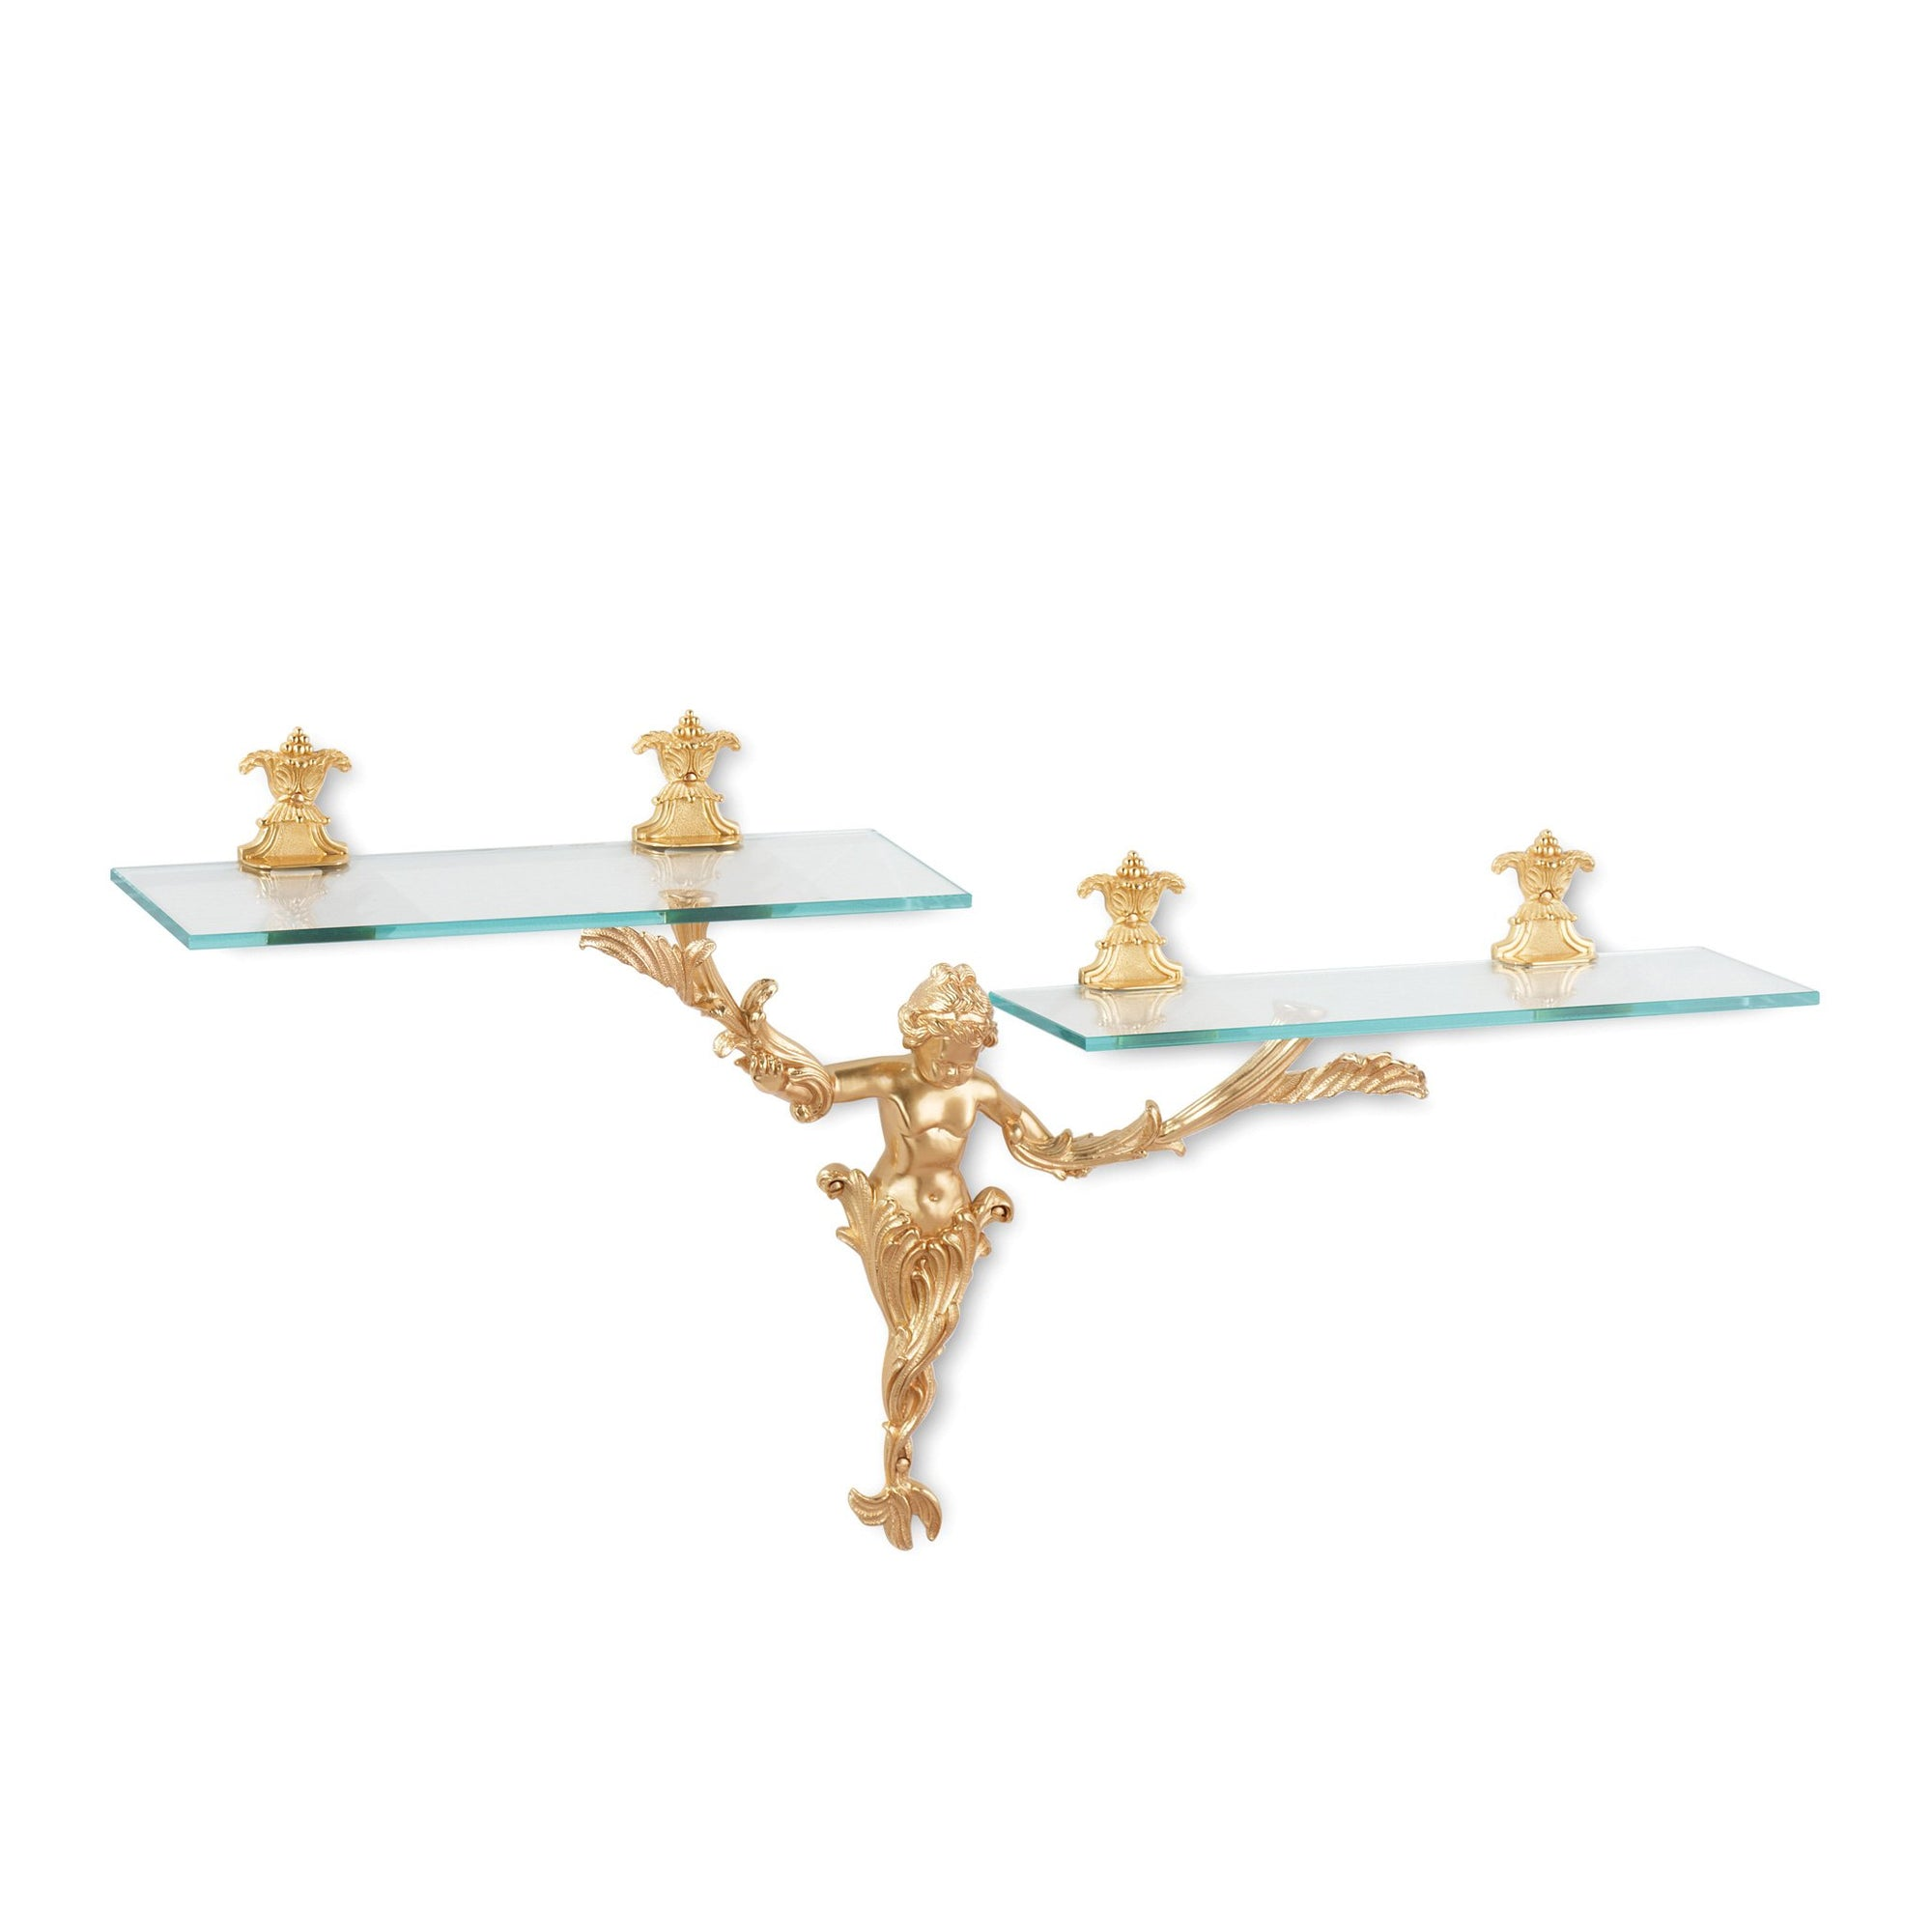 3685S-GP Sherle Wagner International Water Nymph Shelf in Gold Plate metal finish